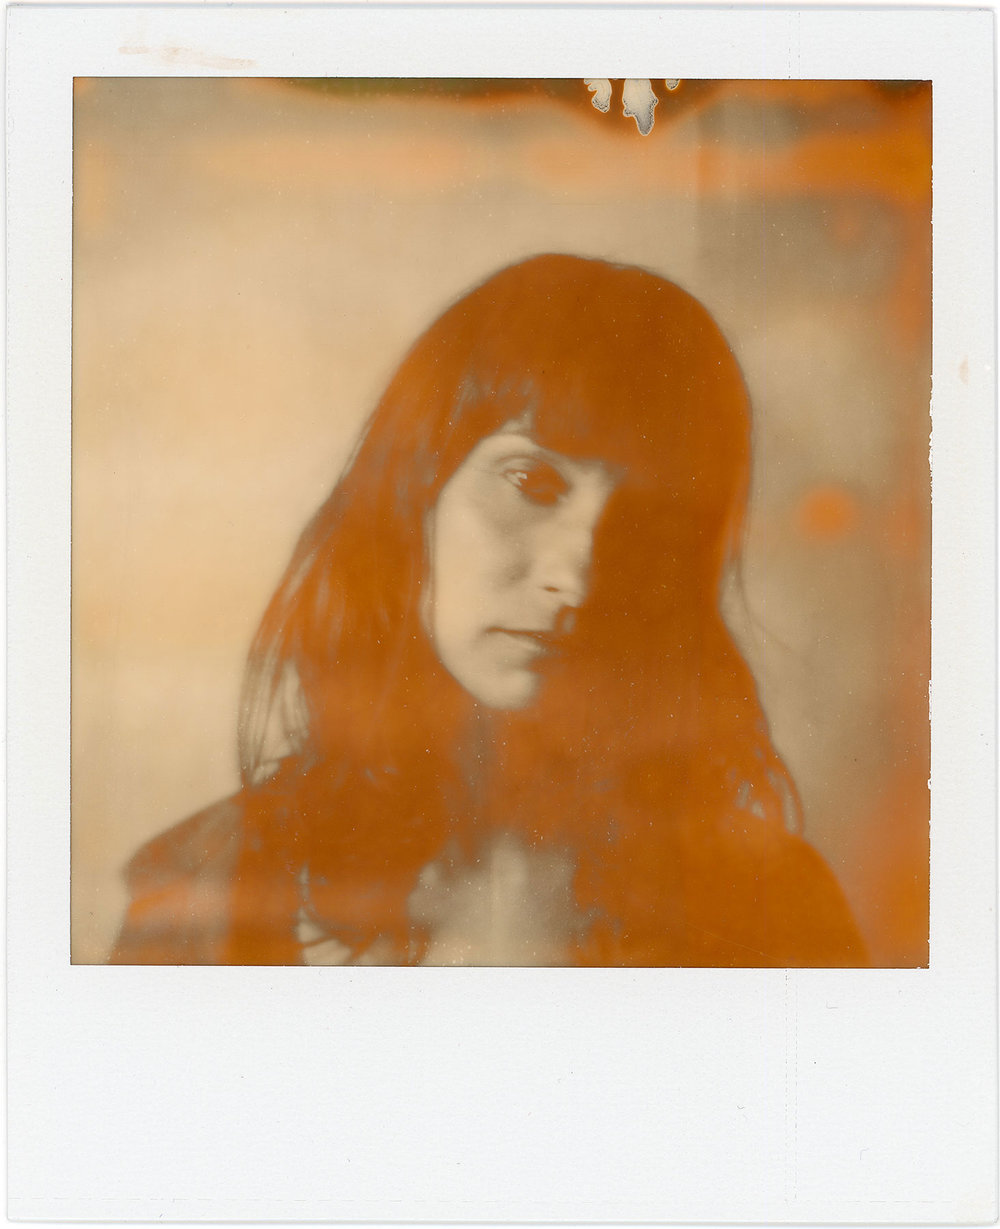 Panico | SX-70 Sonar | Impossible Project PX100 | Urizen Freaza